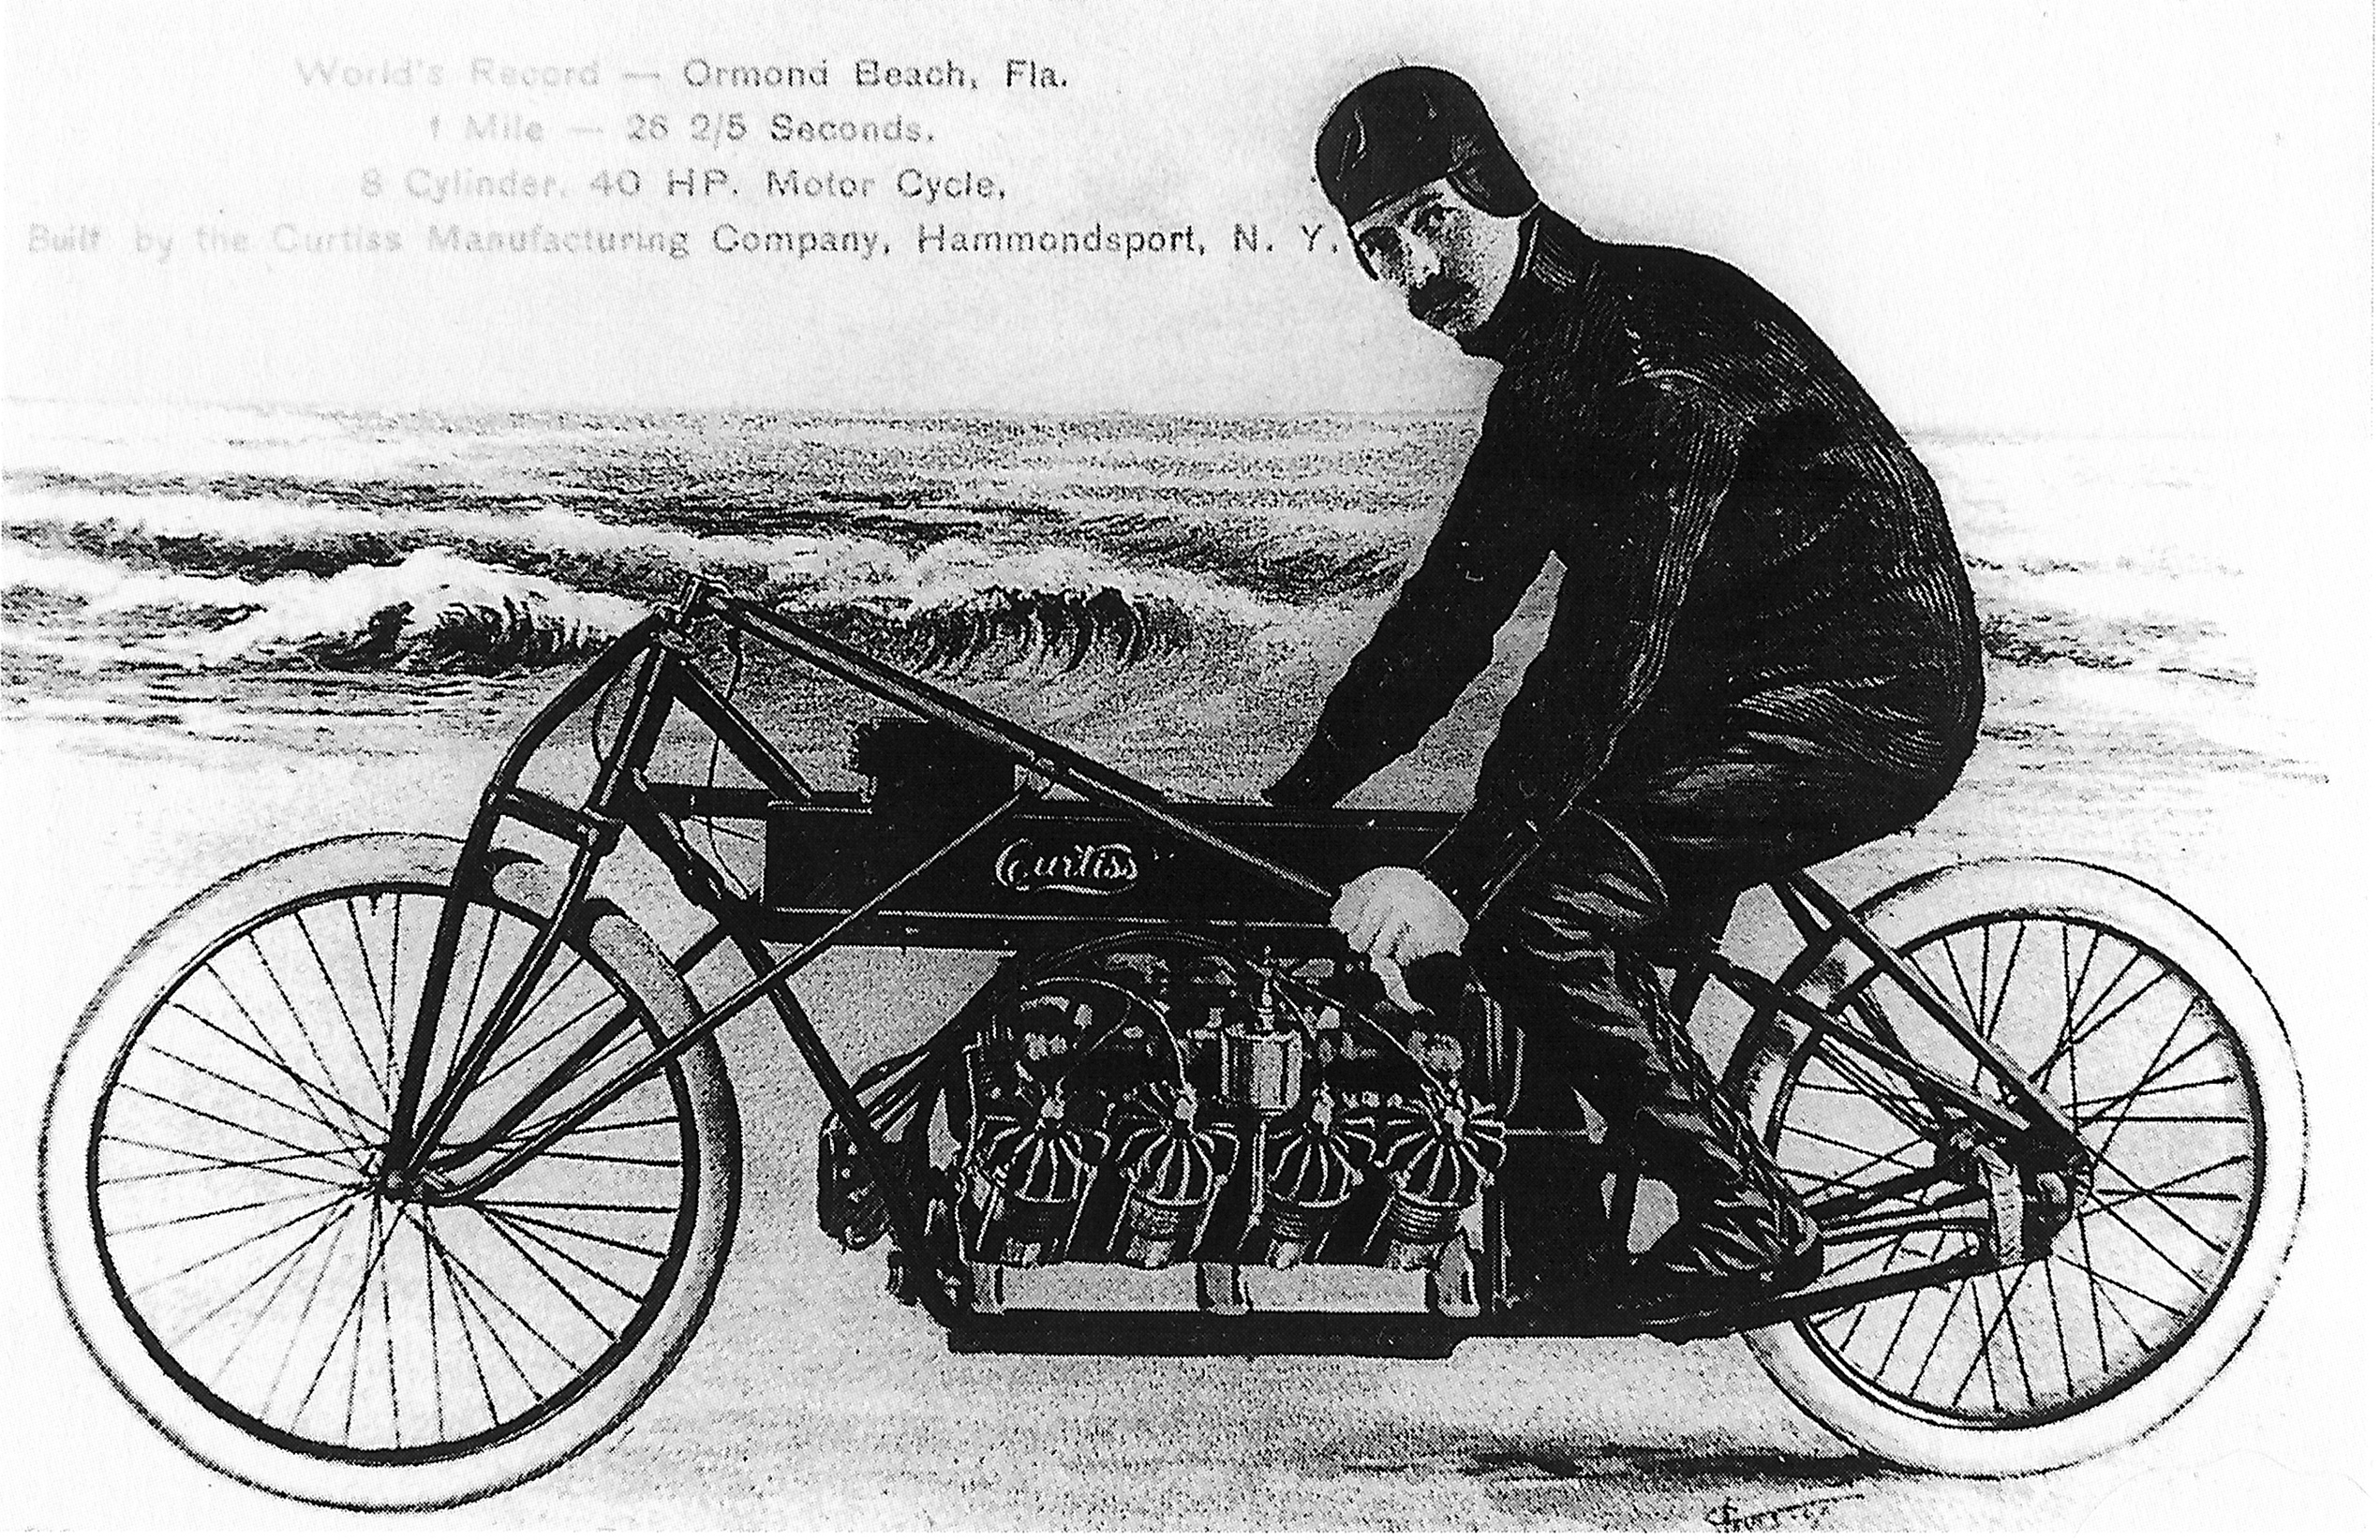 Glenn Curtiss On His V Motorcycle C Ormond Beach C Florida